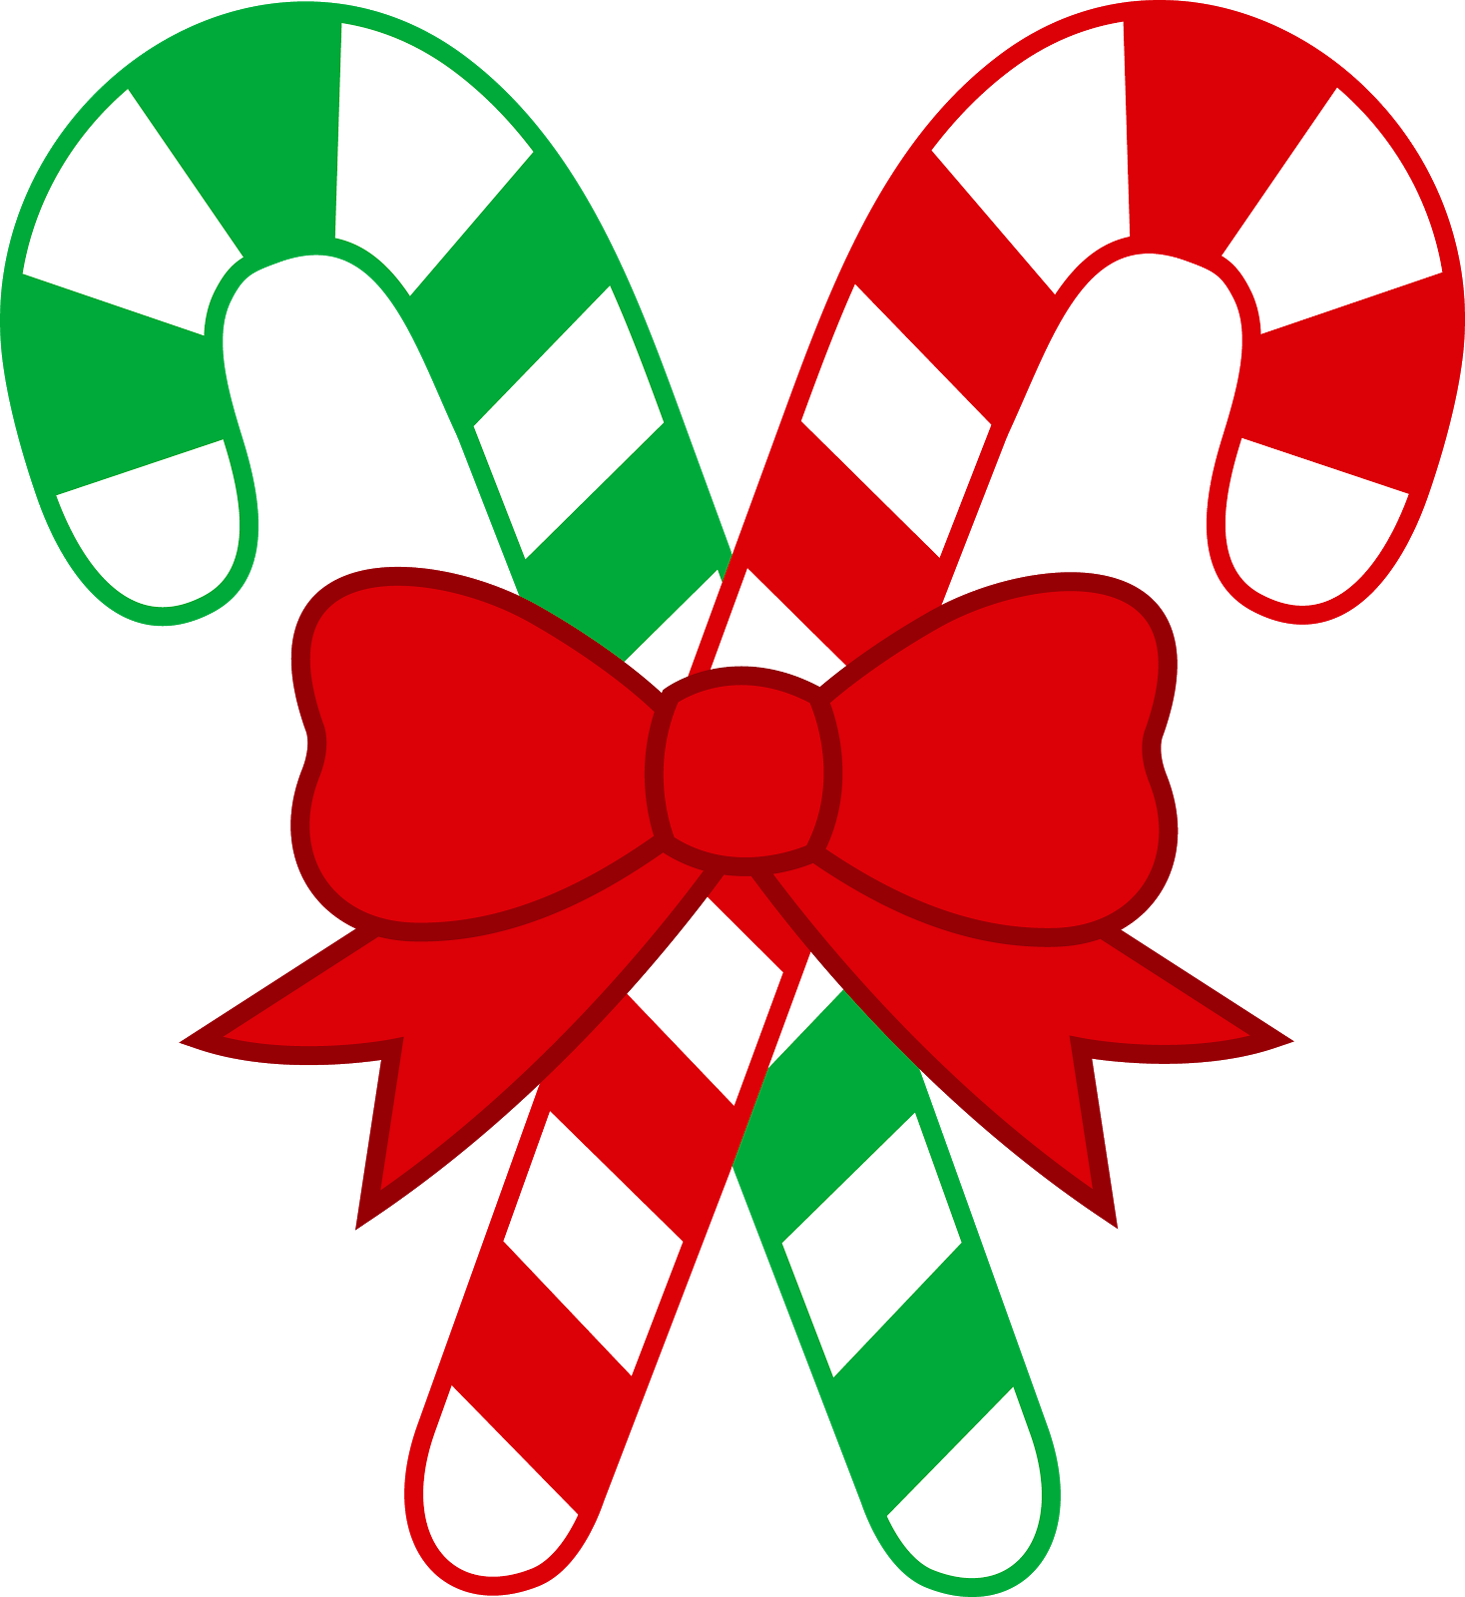 Candy Cane Images Free